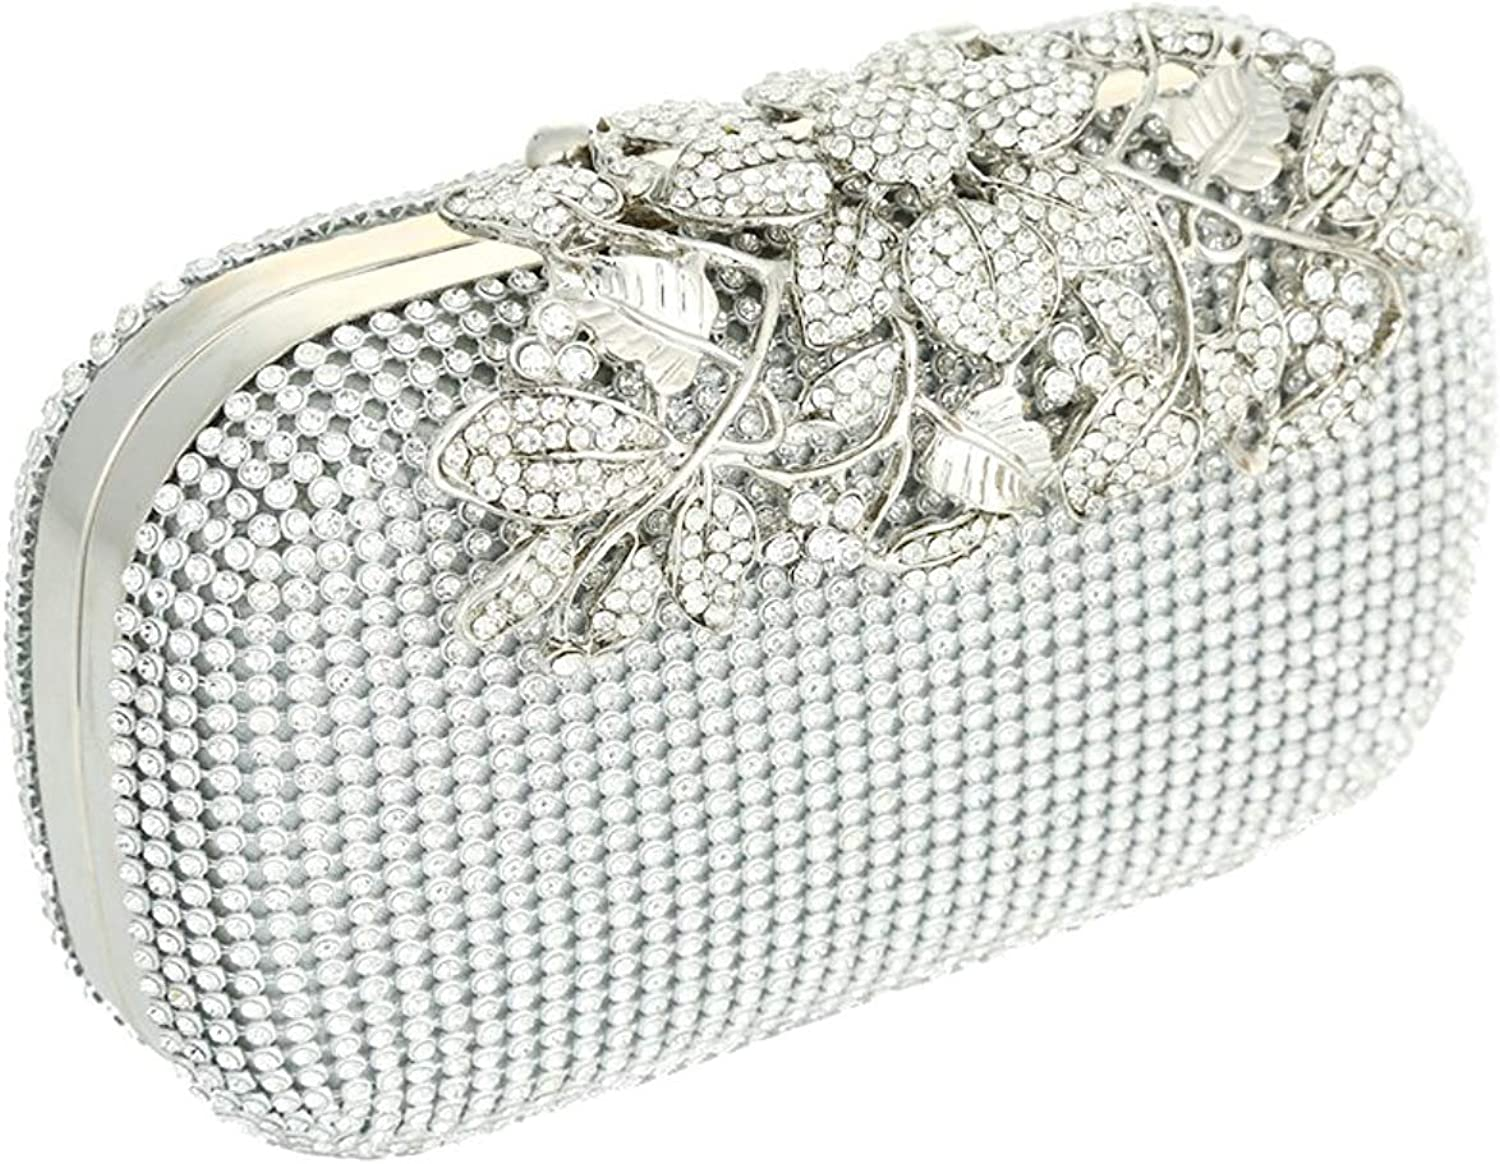 Boby Silver color Diamante Crystal Evening Bag Clutch Purse for Party and Bridal Prom for Women